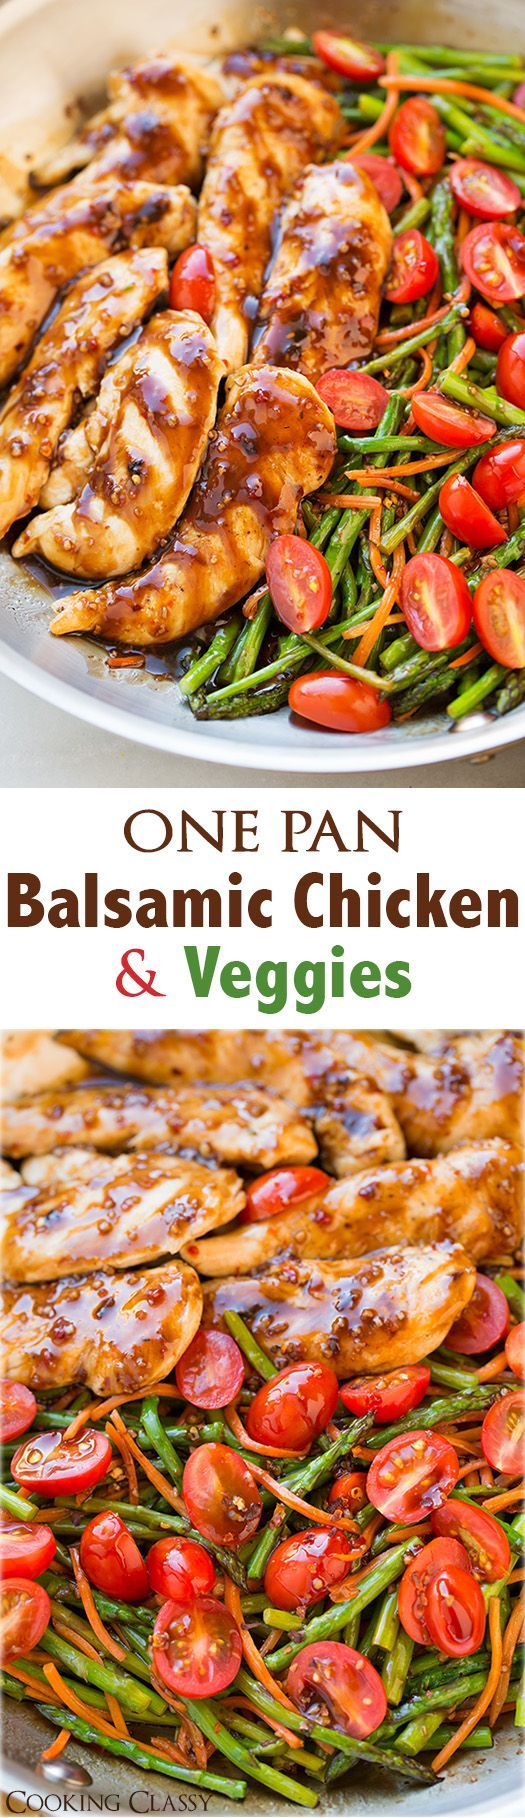 One Pan Balsamic Chicken and Veggies Recipe plus 24 more of the most pinned one pot meals